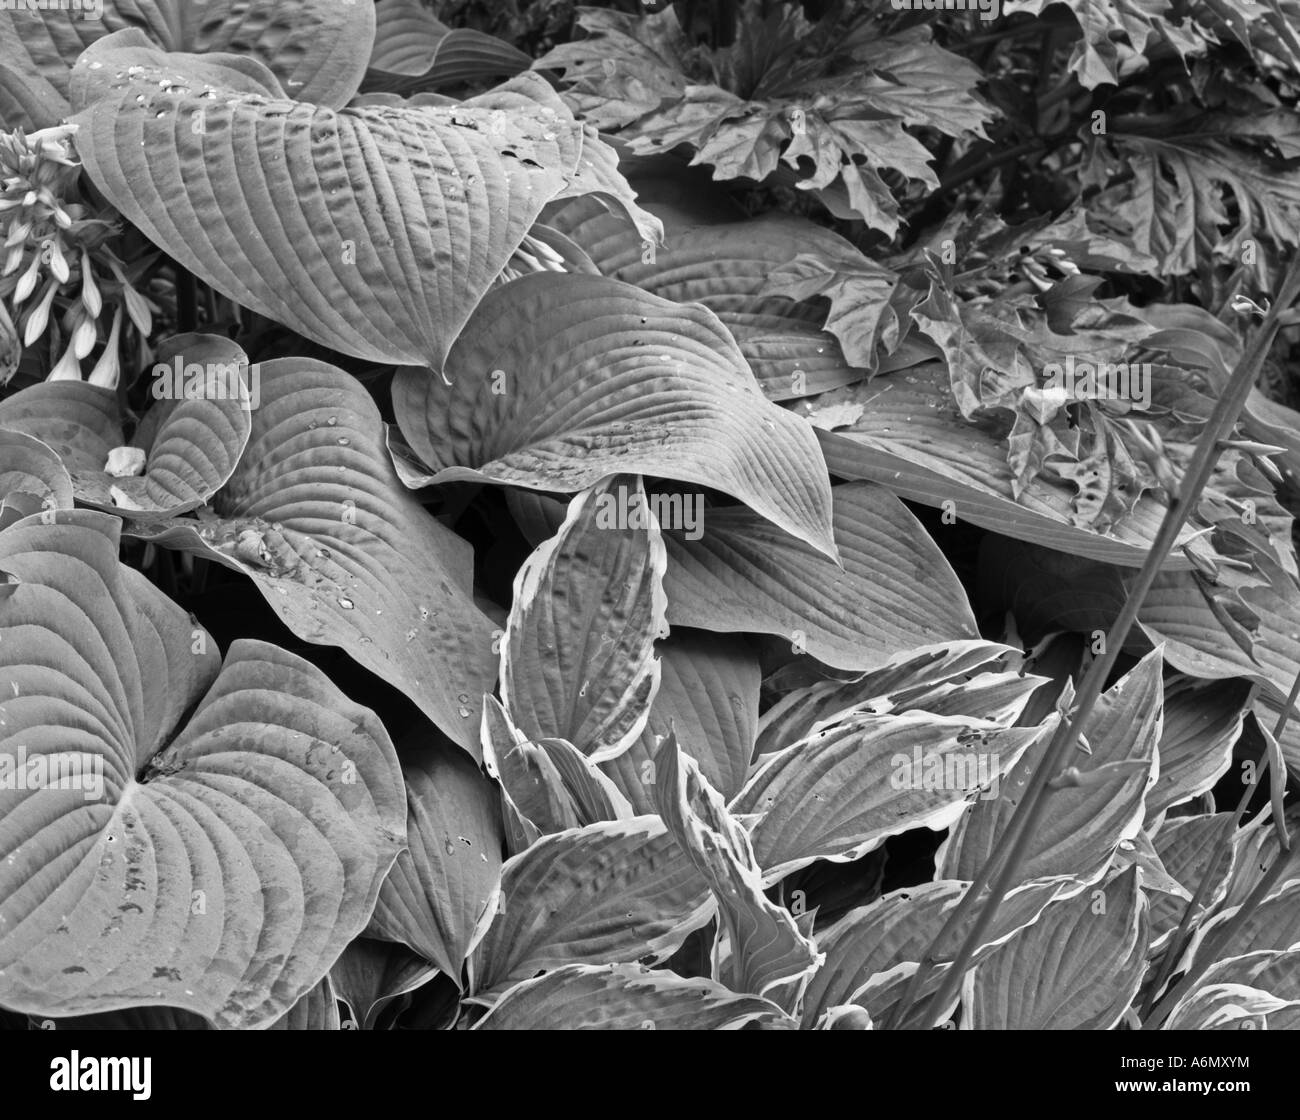 Hosta and acanthus leaves after rain shot in black and white - Stock Image